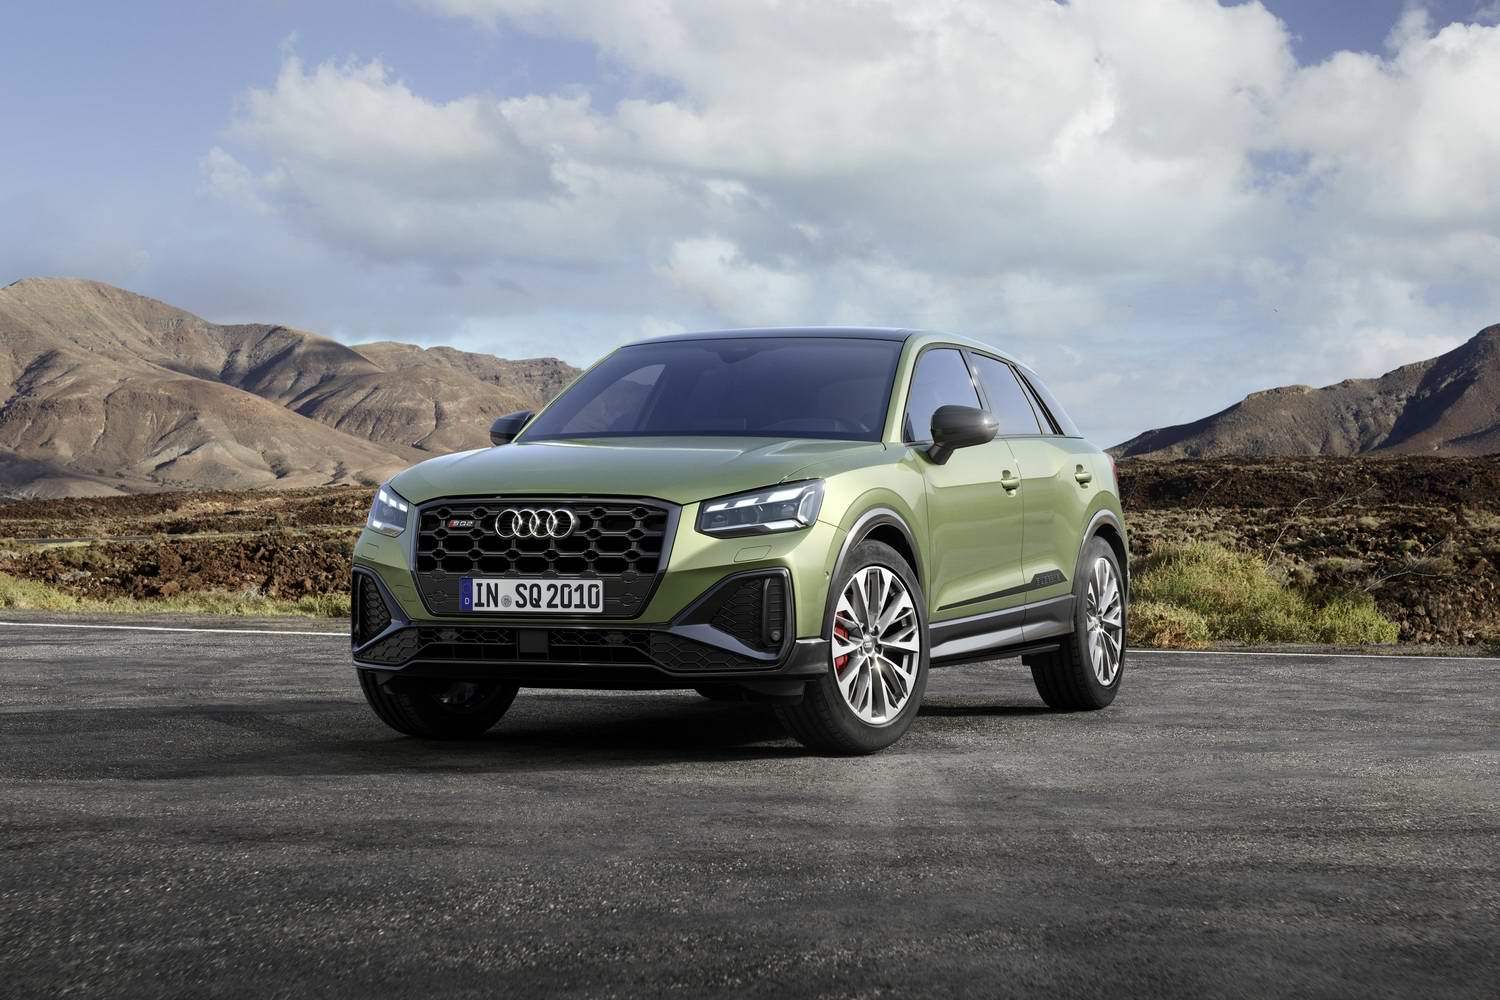 Car News | Audi updates sporty SQ2 crossover | CompleteCar.ie